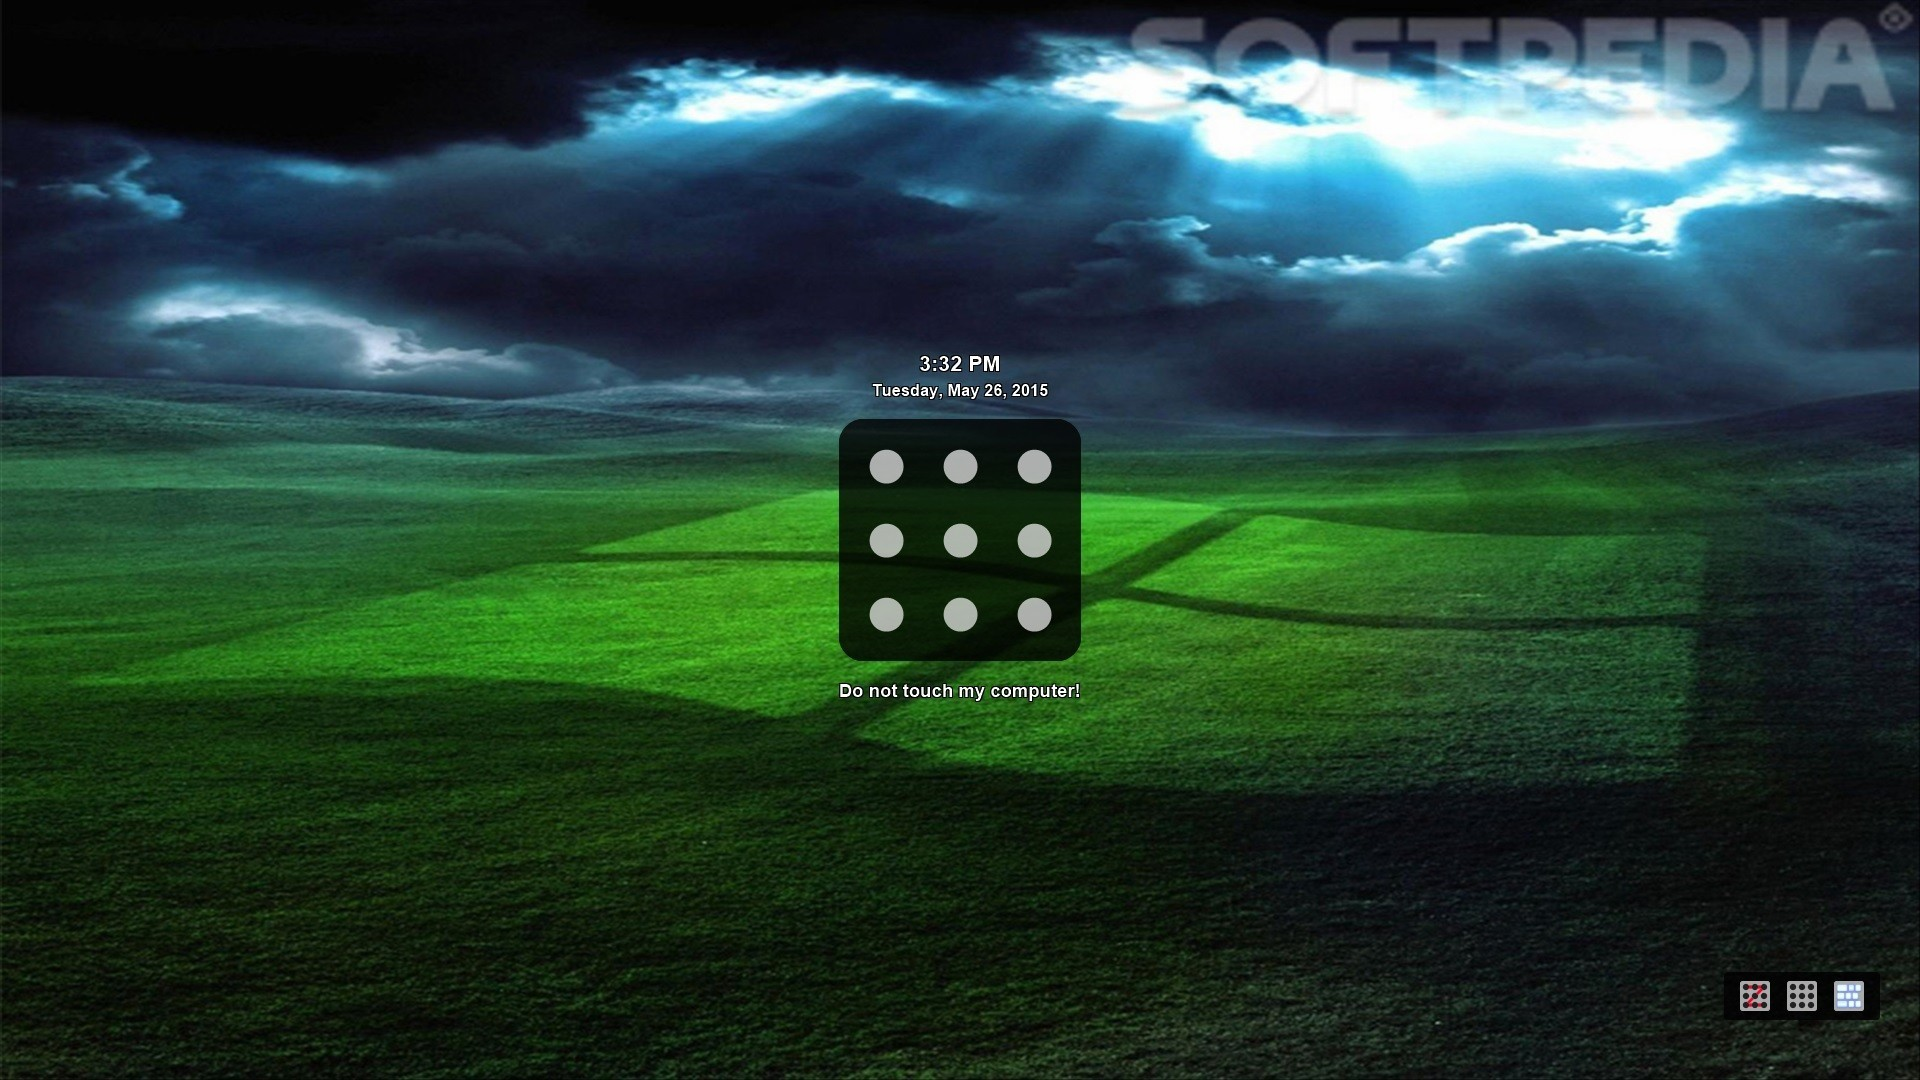 Animated Wallpaper Windows 10 56 Images